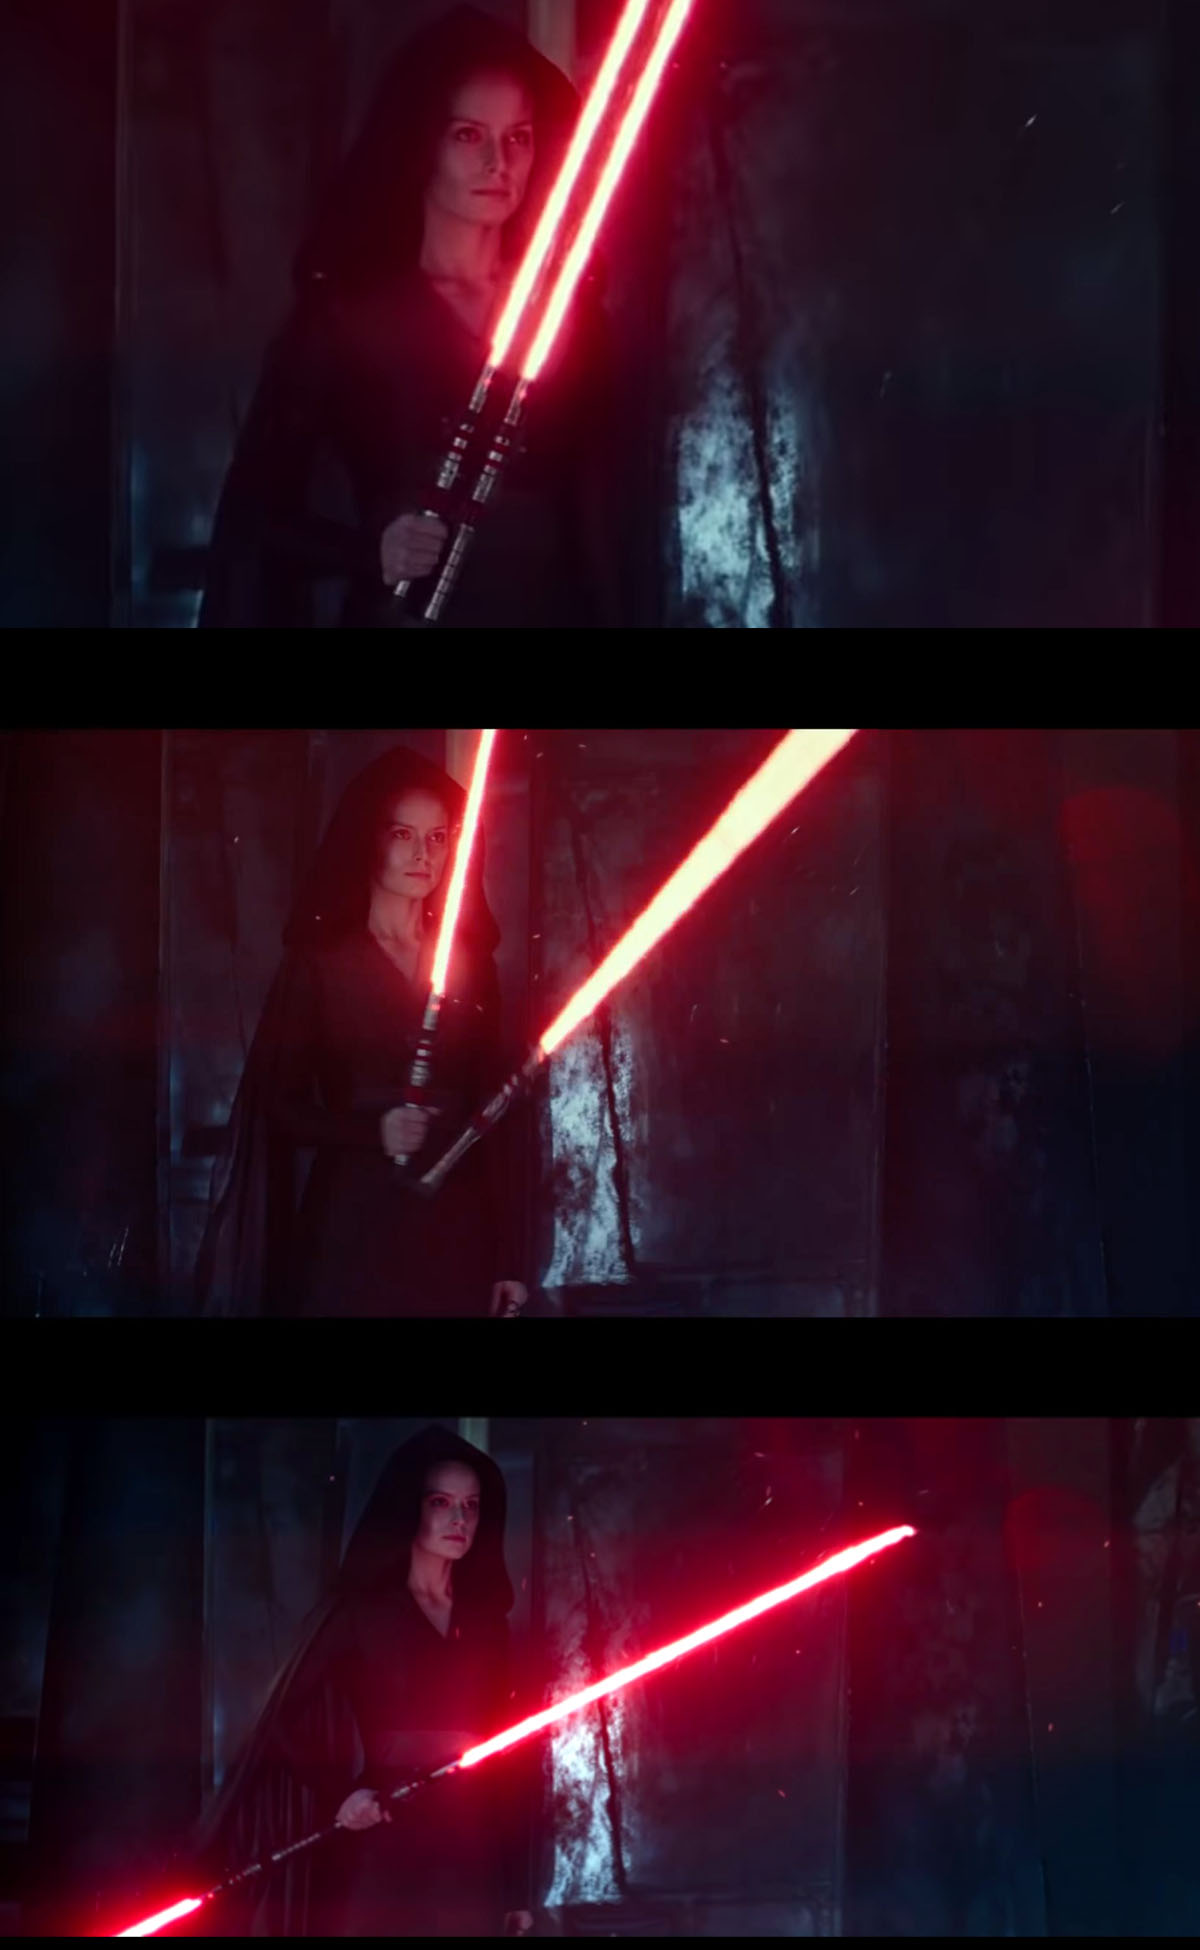 Hinged Double-Bladed Lightsaber